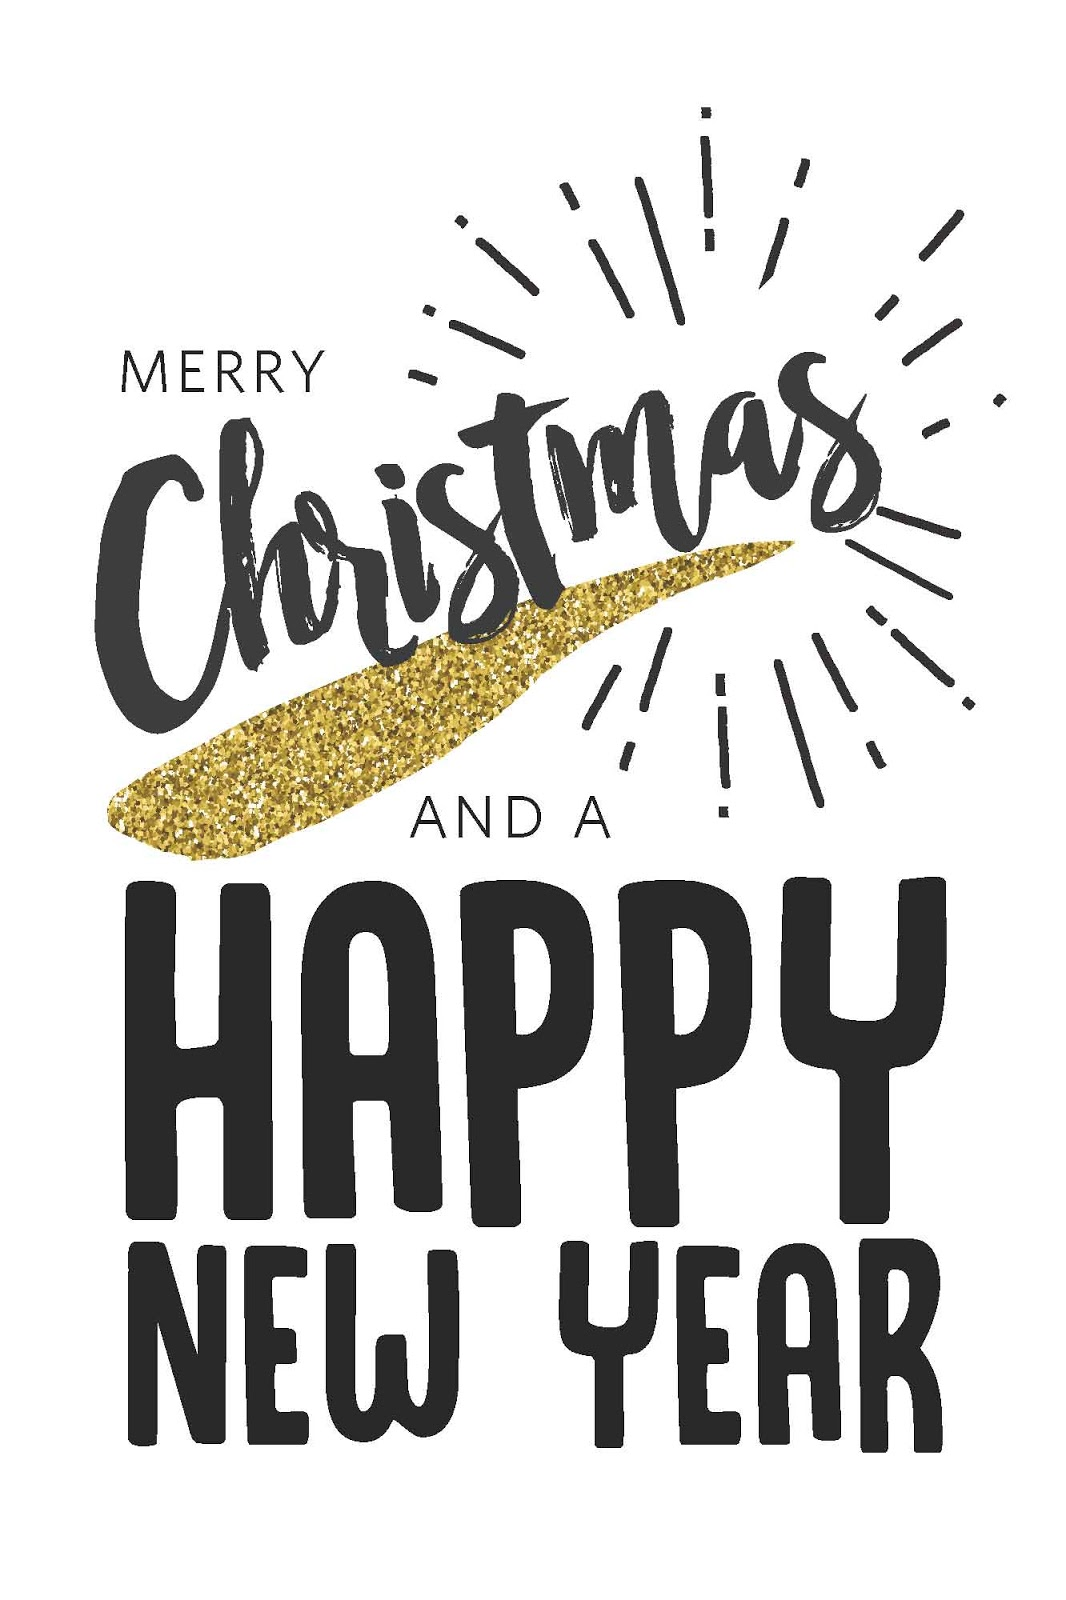 Merry Christmas, Happy New Year Card